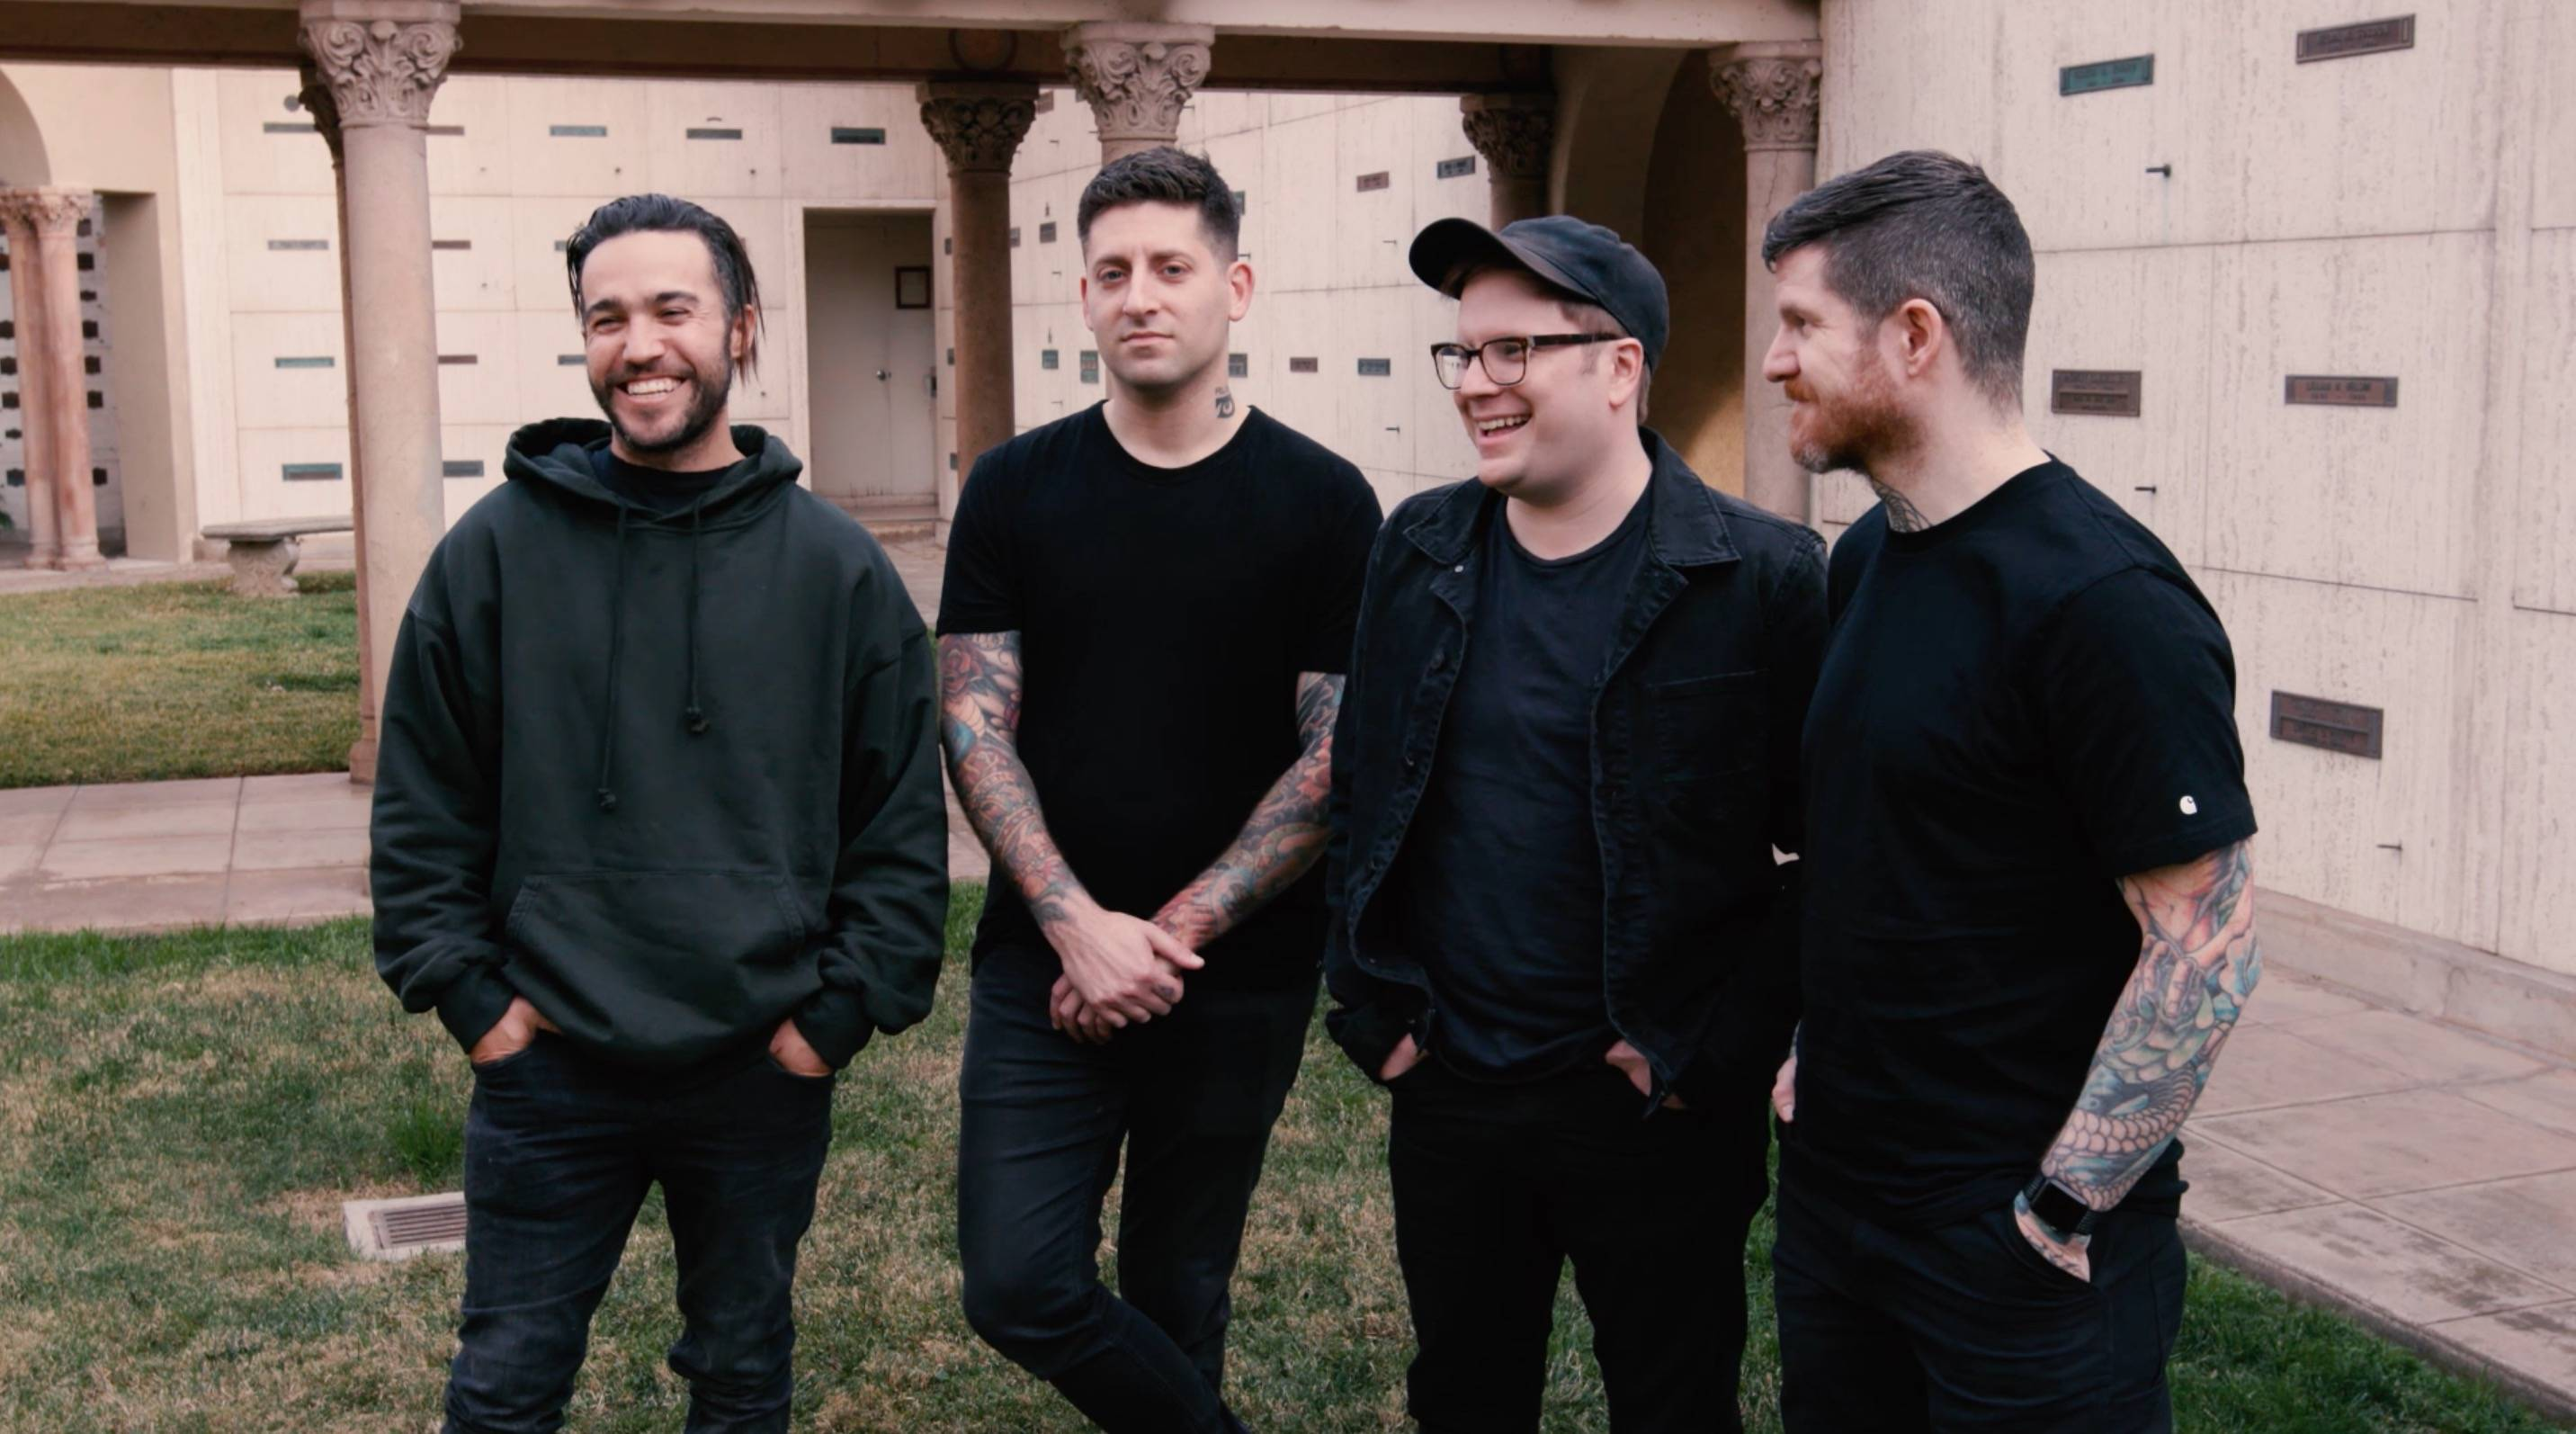 Fall Out Boy x M A N I A